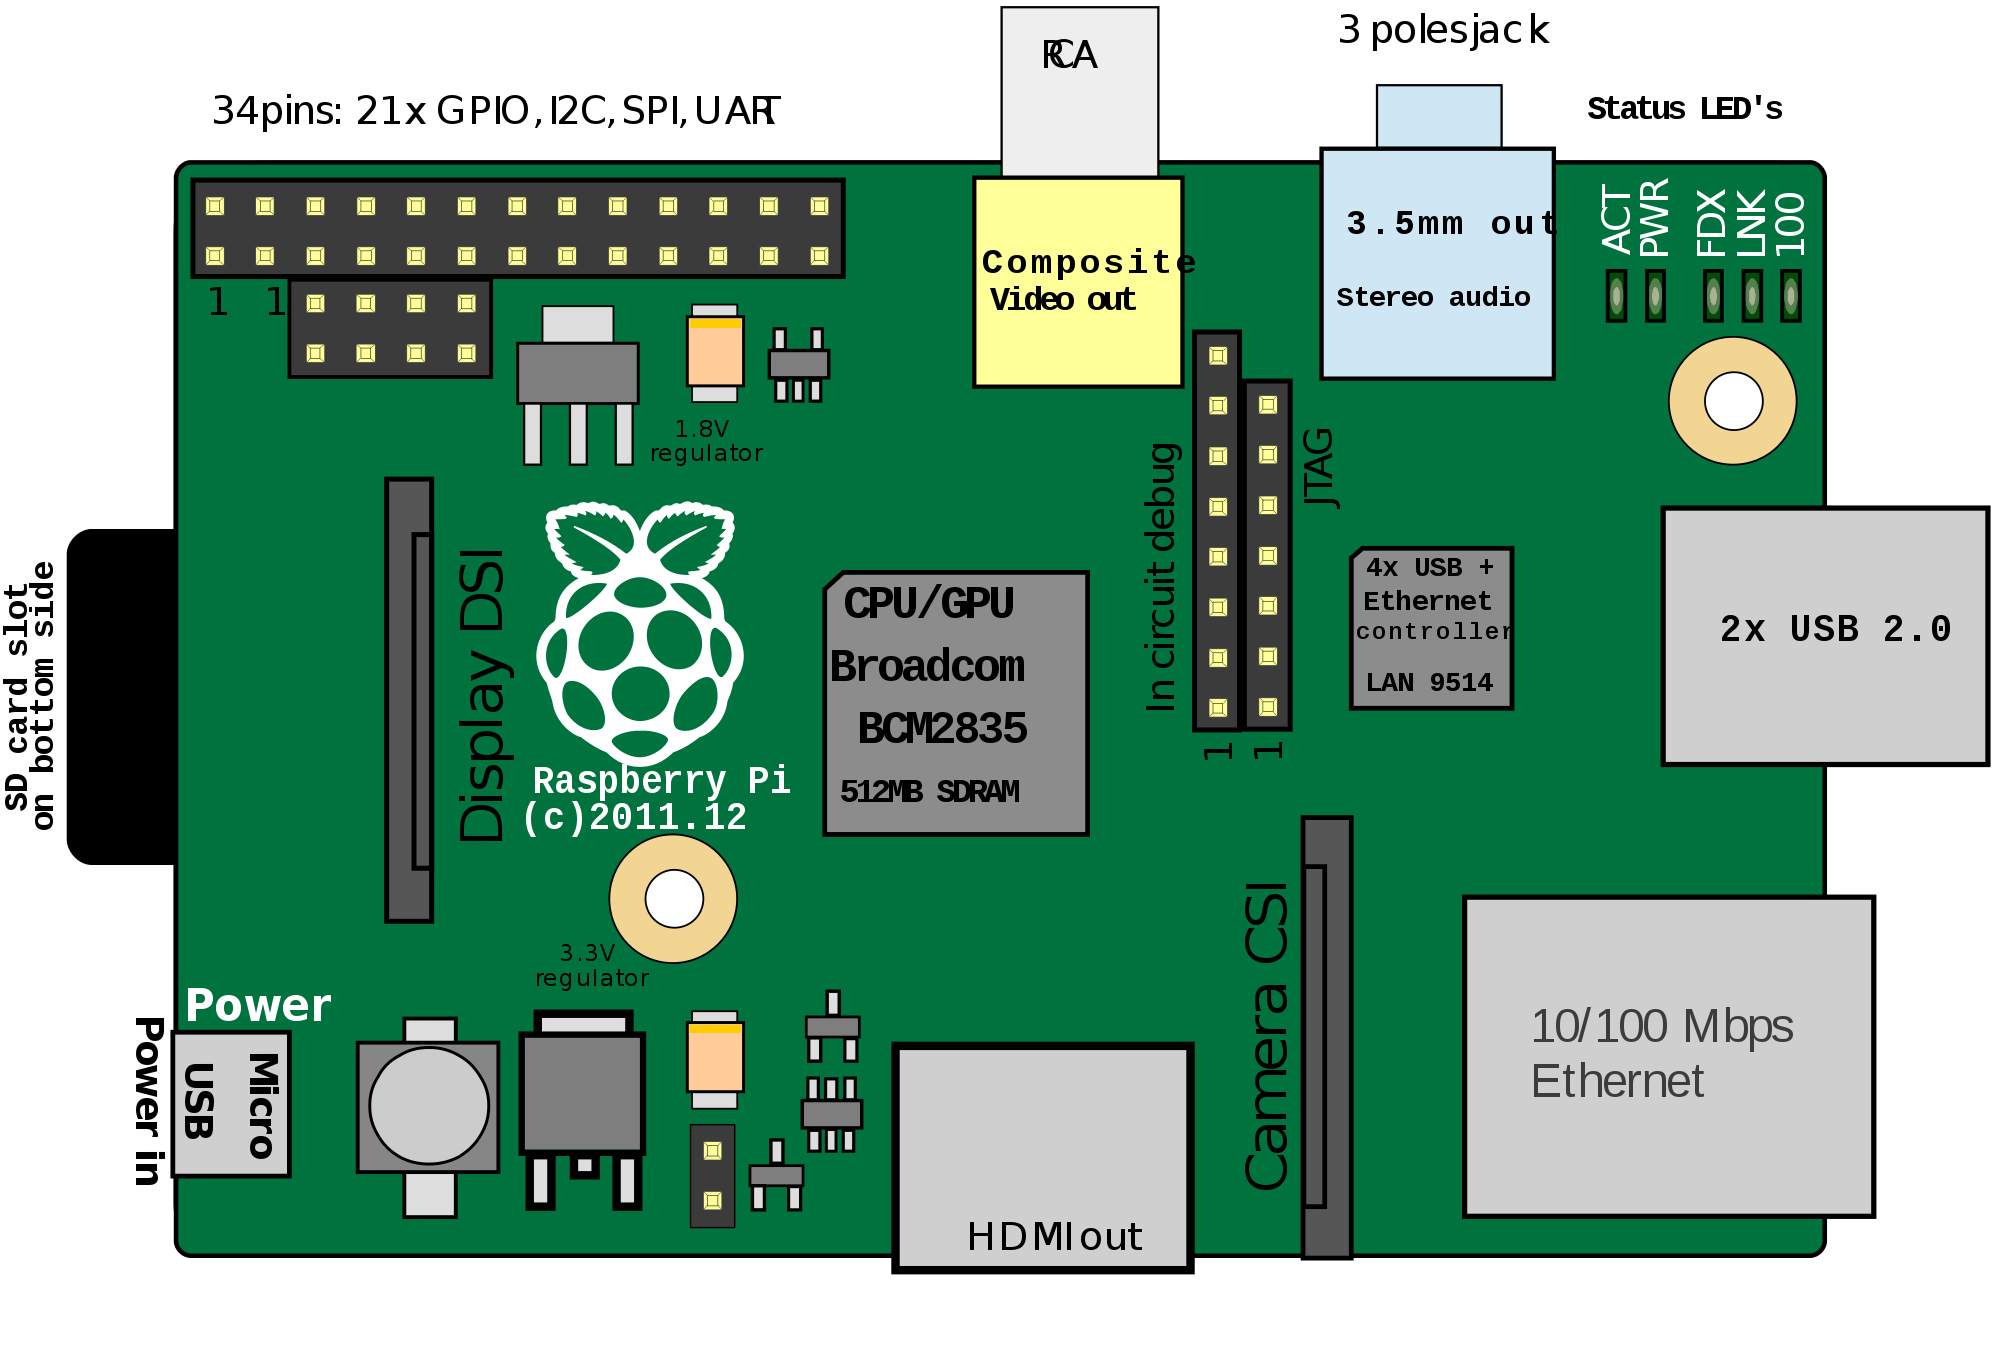 3 clipart raspberry pi. Drawing at getdrawings com